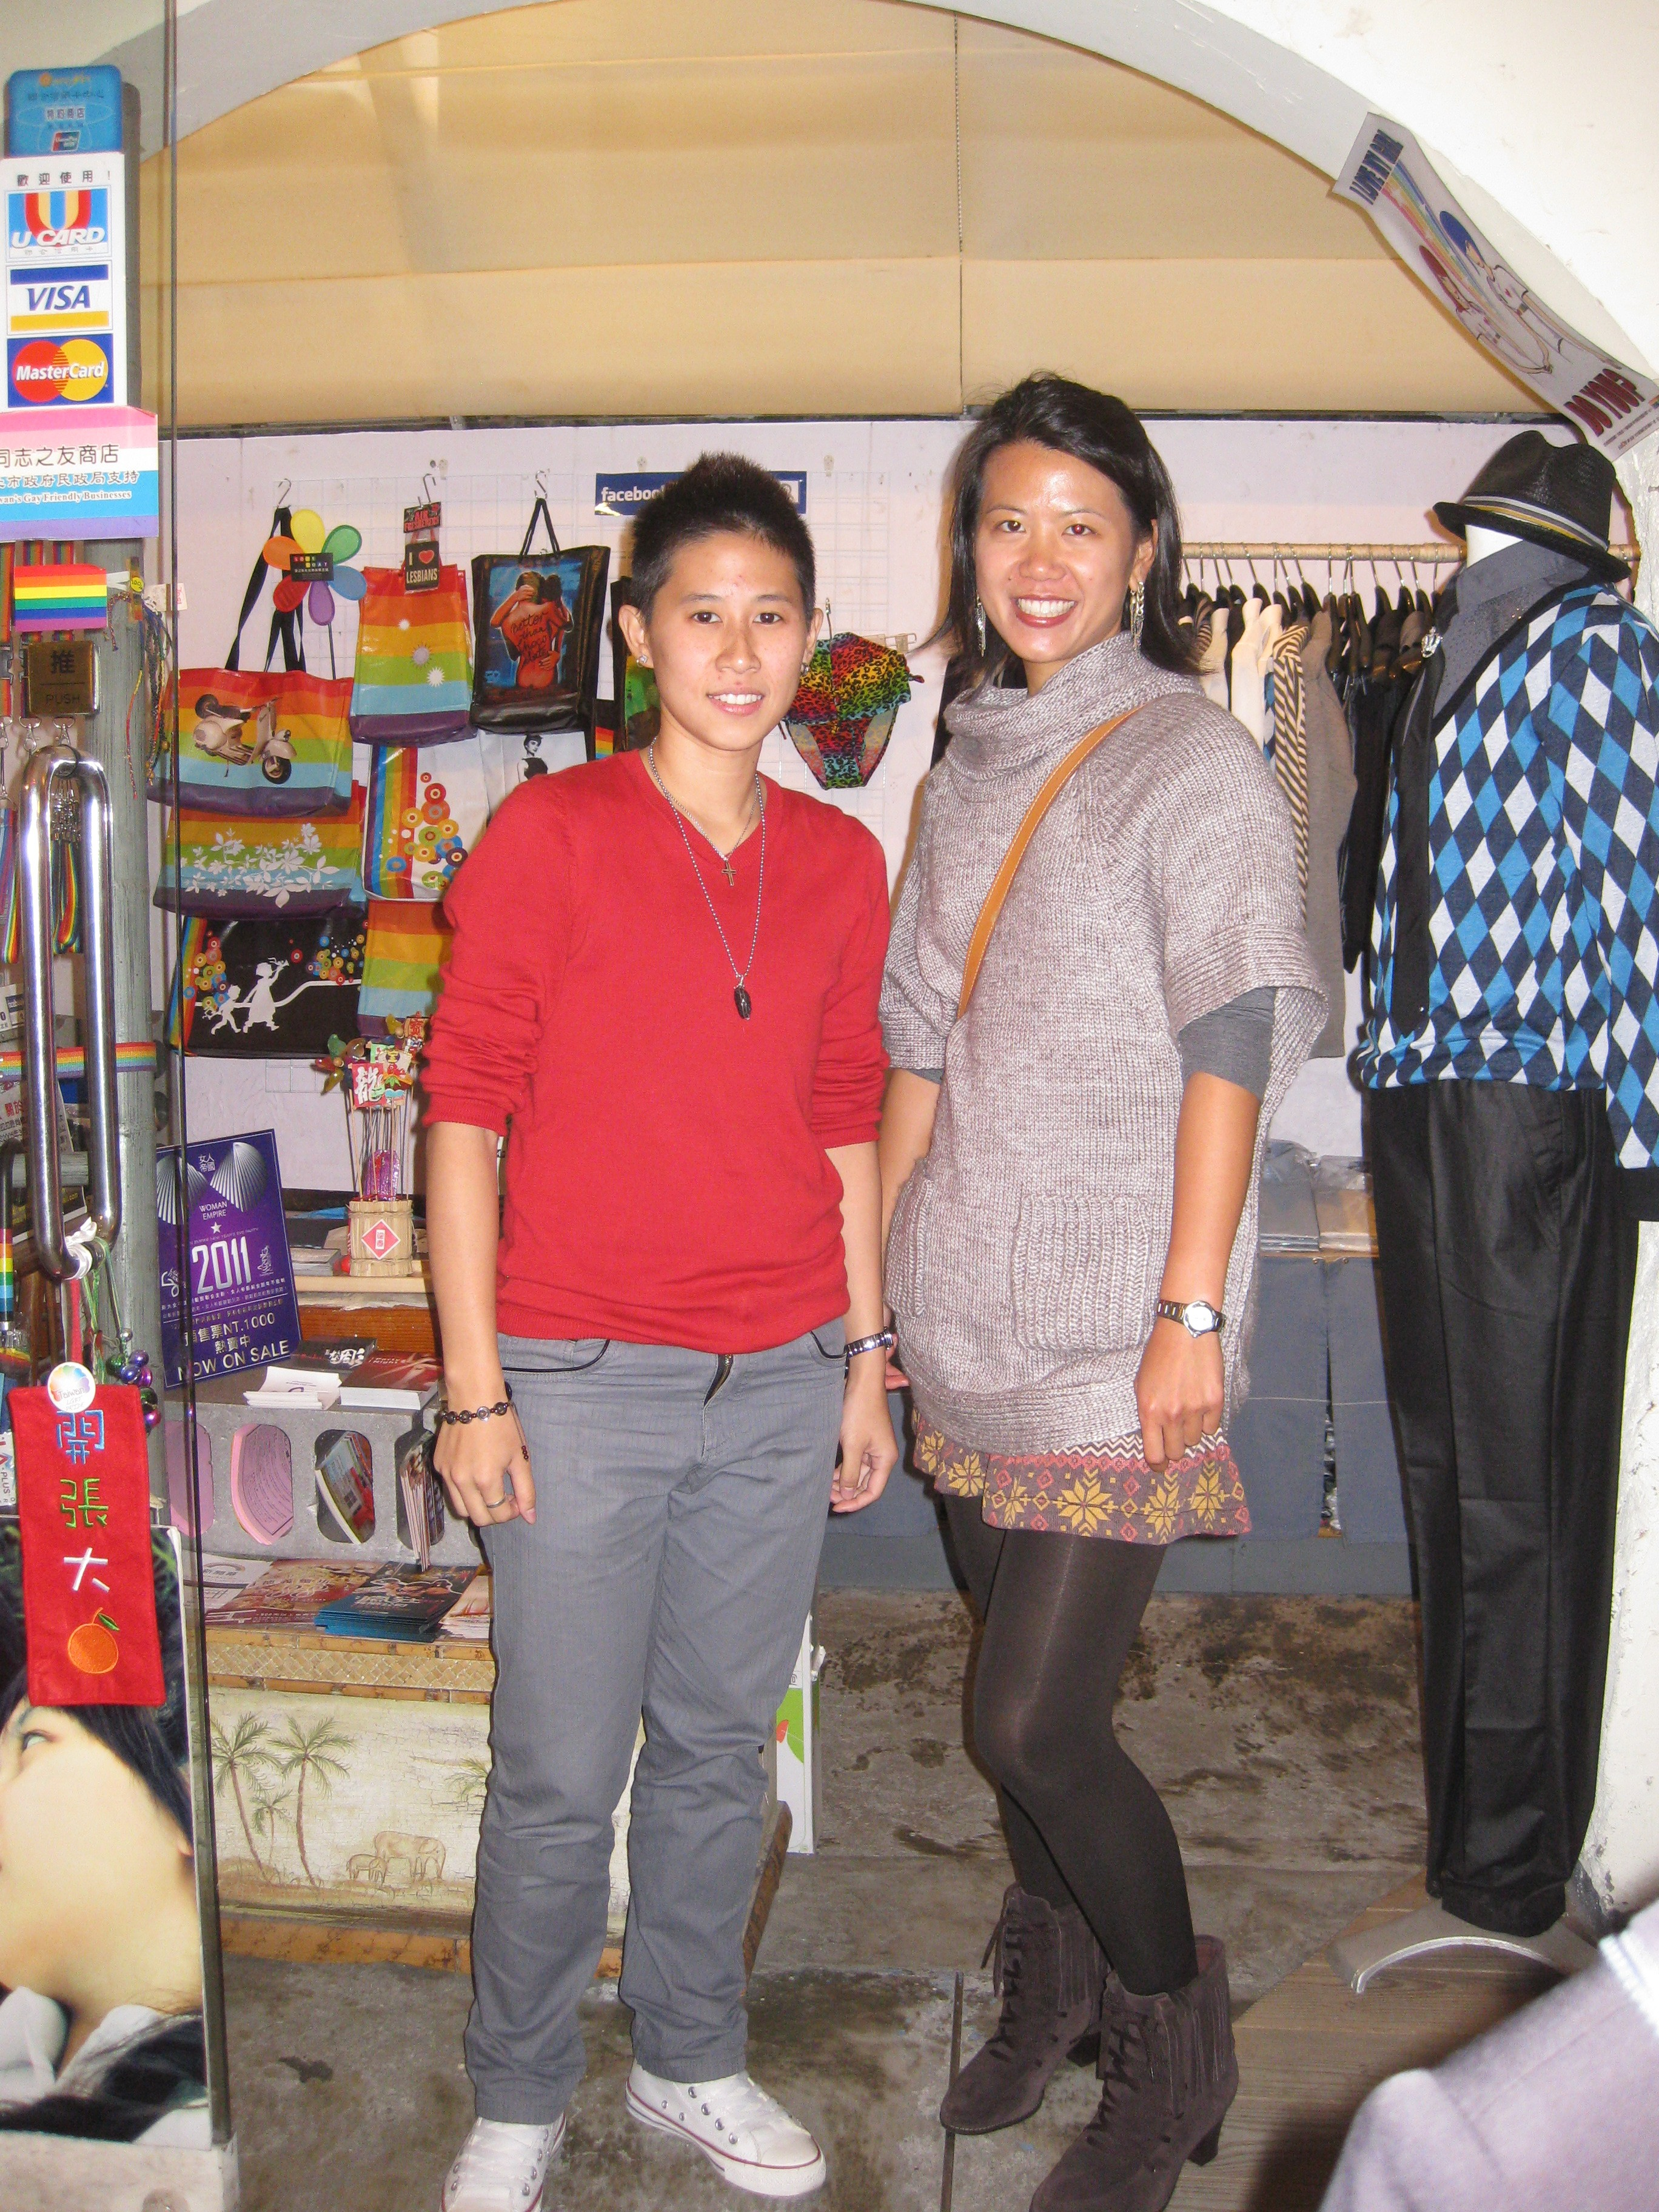 Cheap clothing stores. Lesbian clothing stores